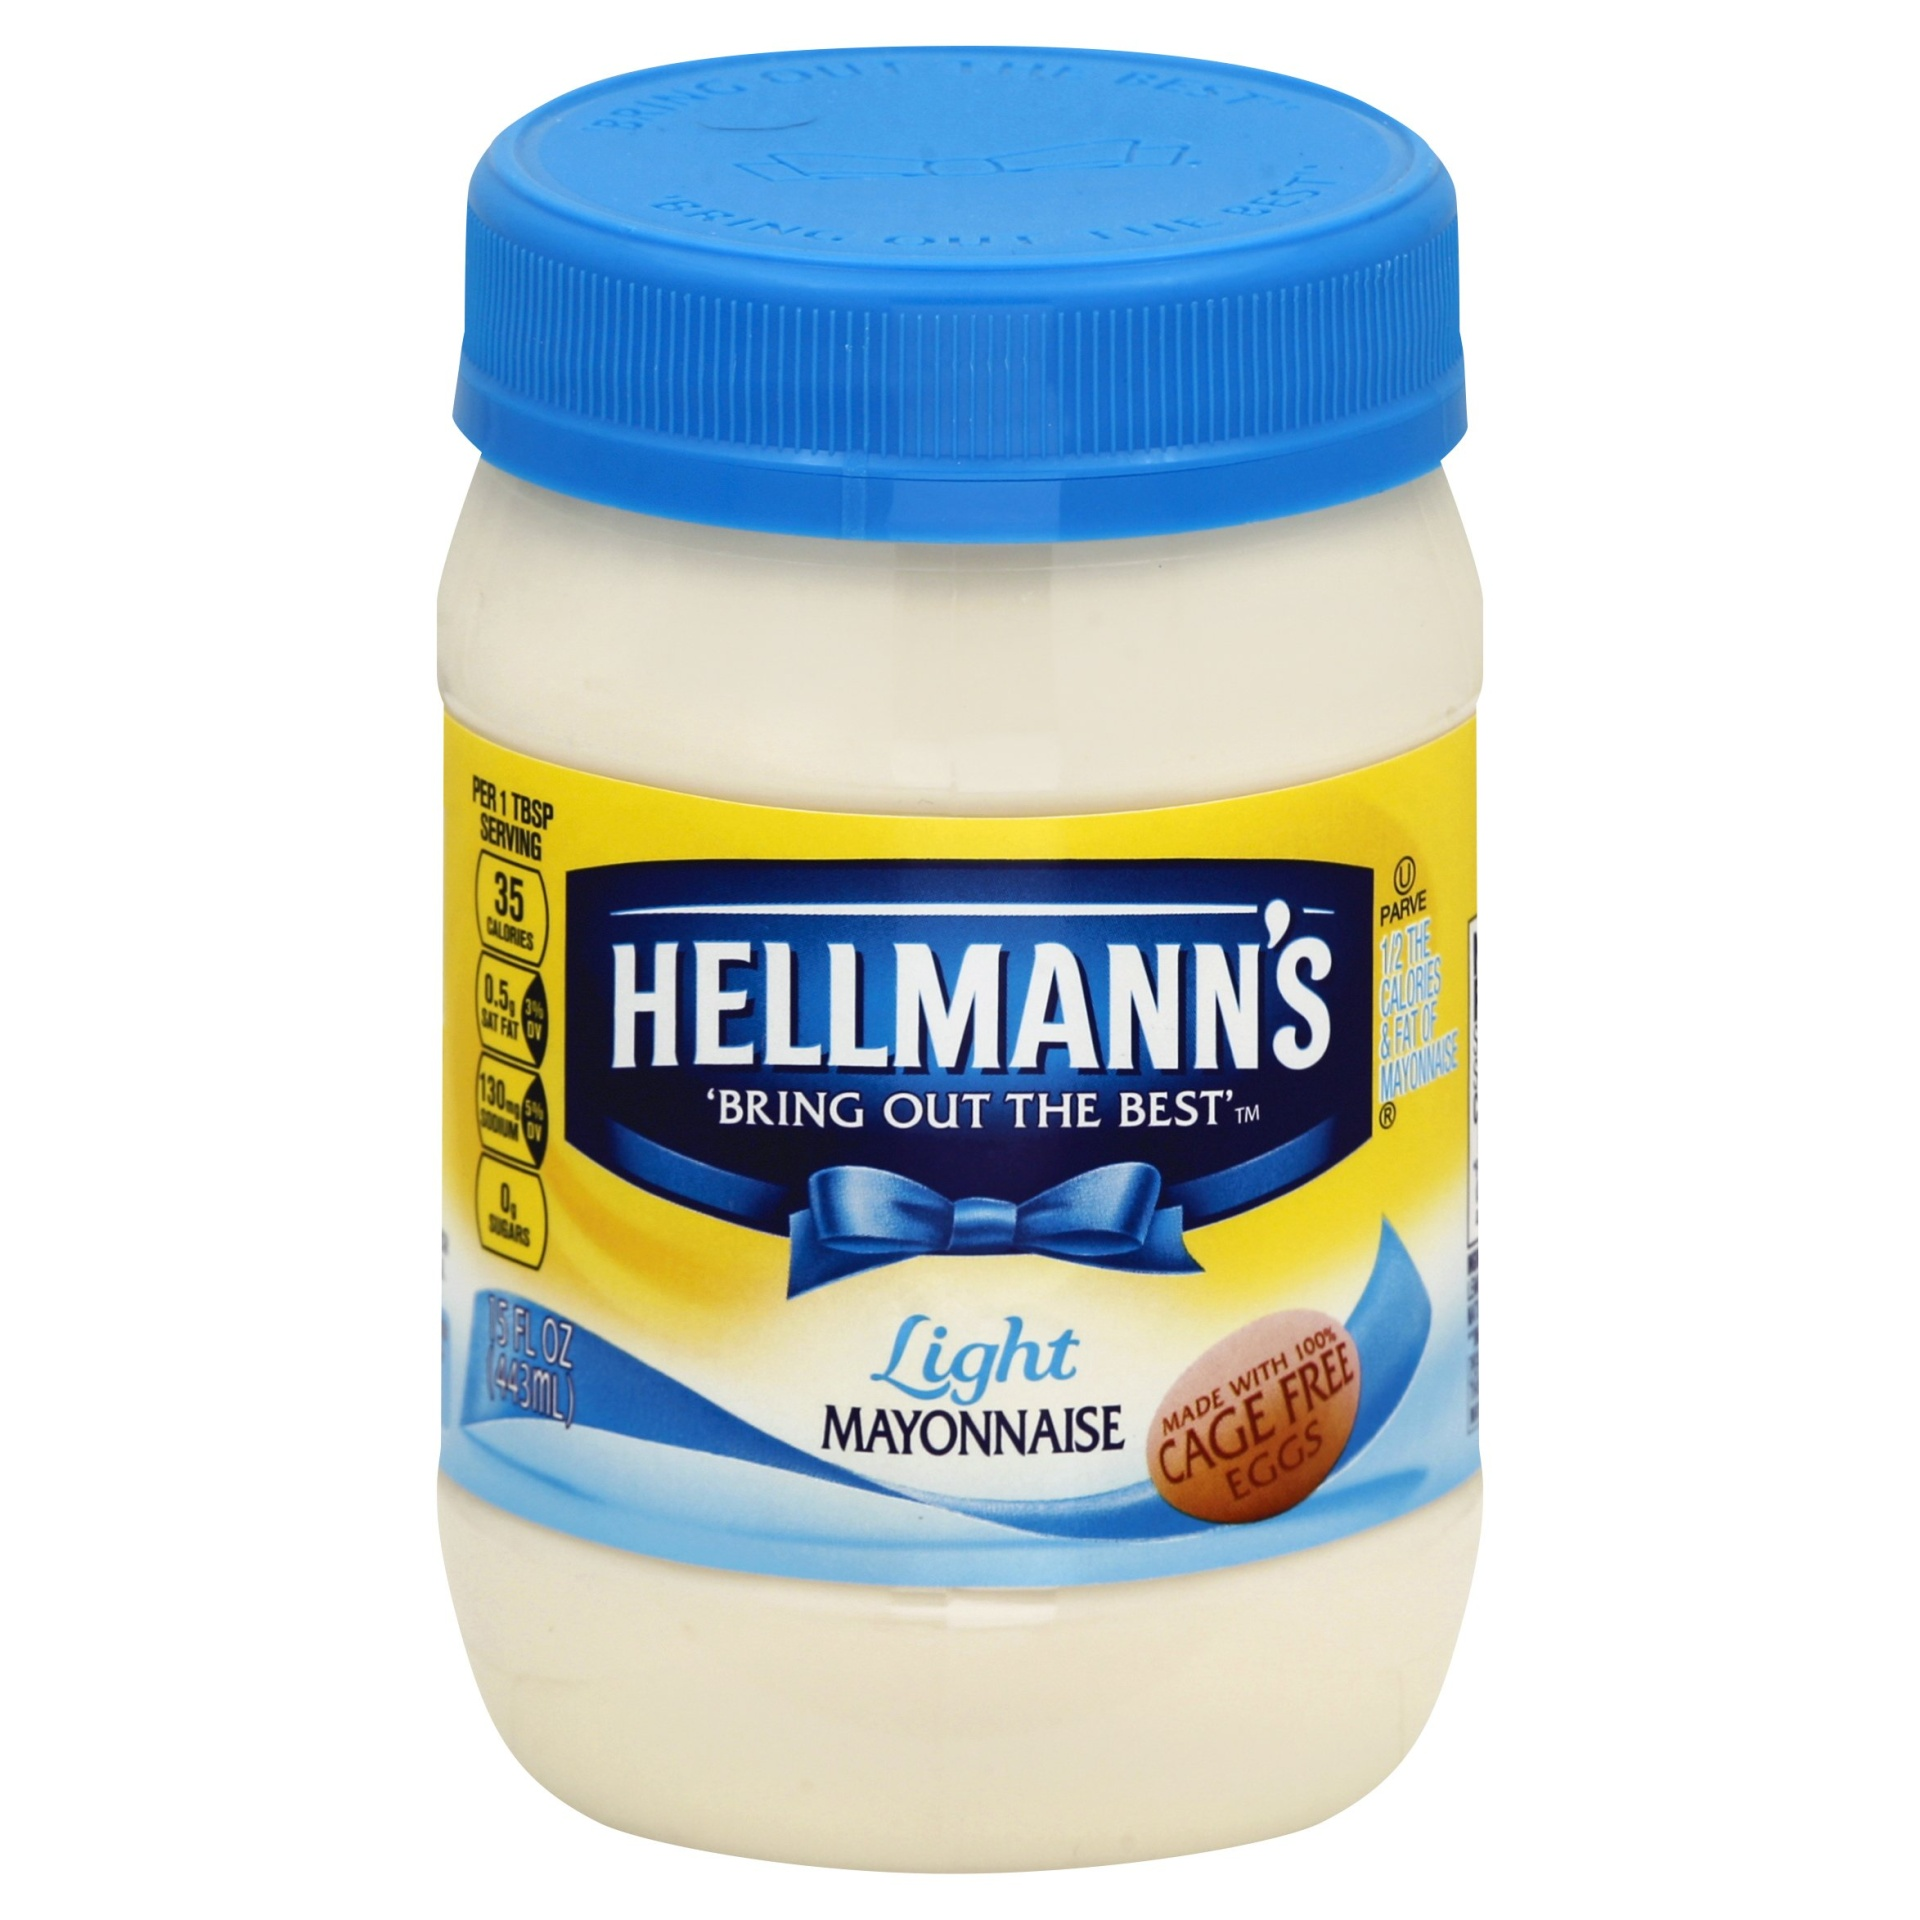 slide 1 of 5, Hellmann's Light Mayonnaise,